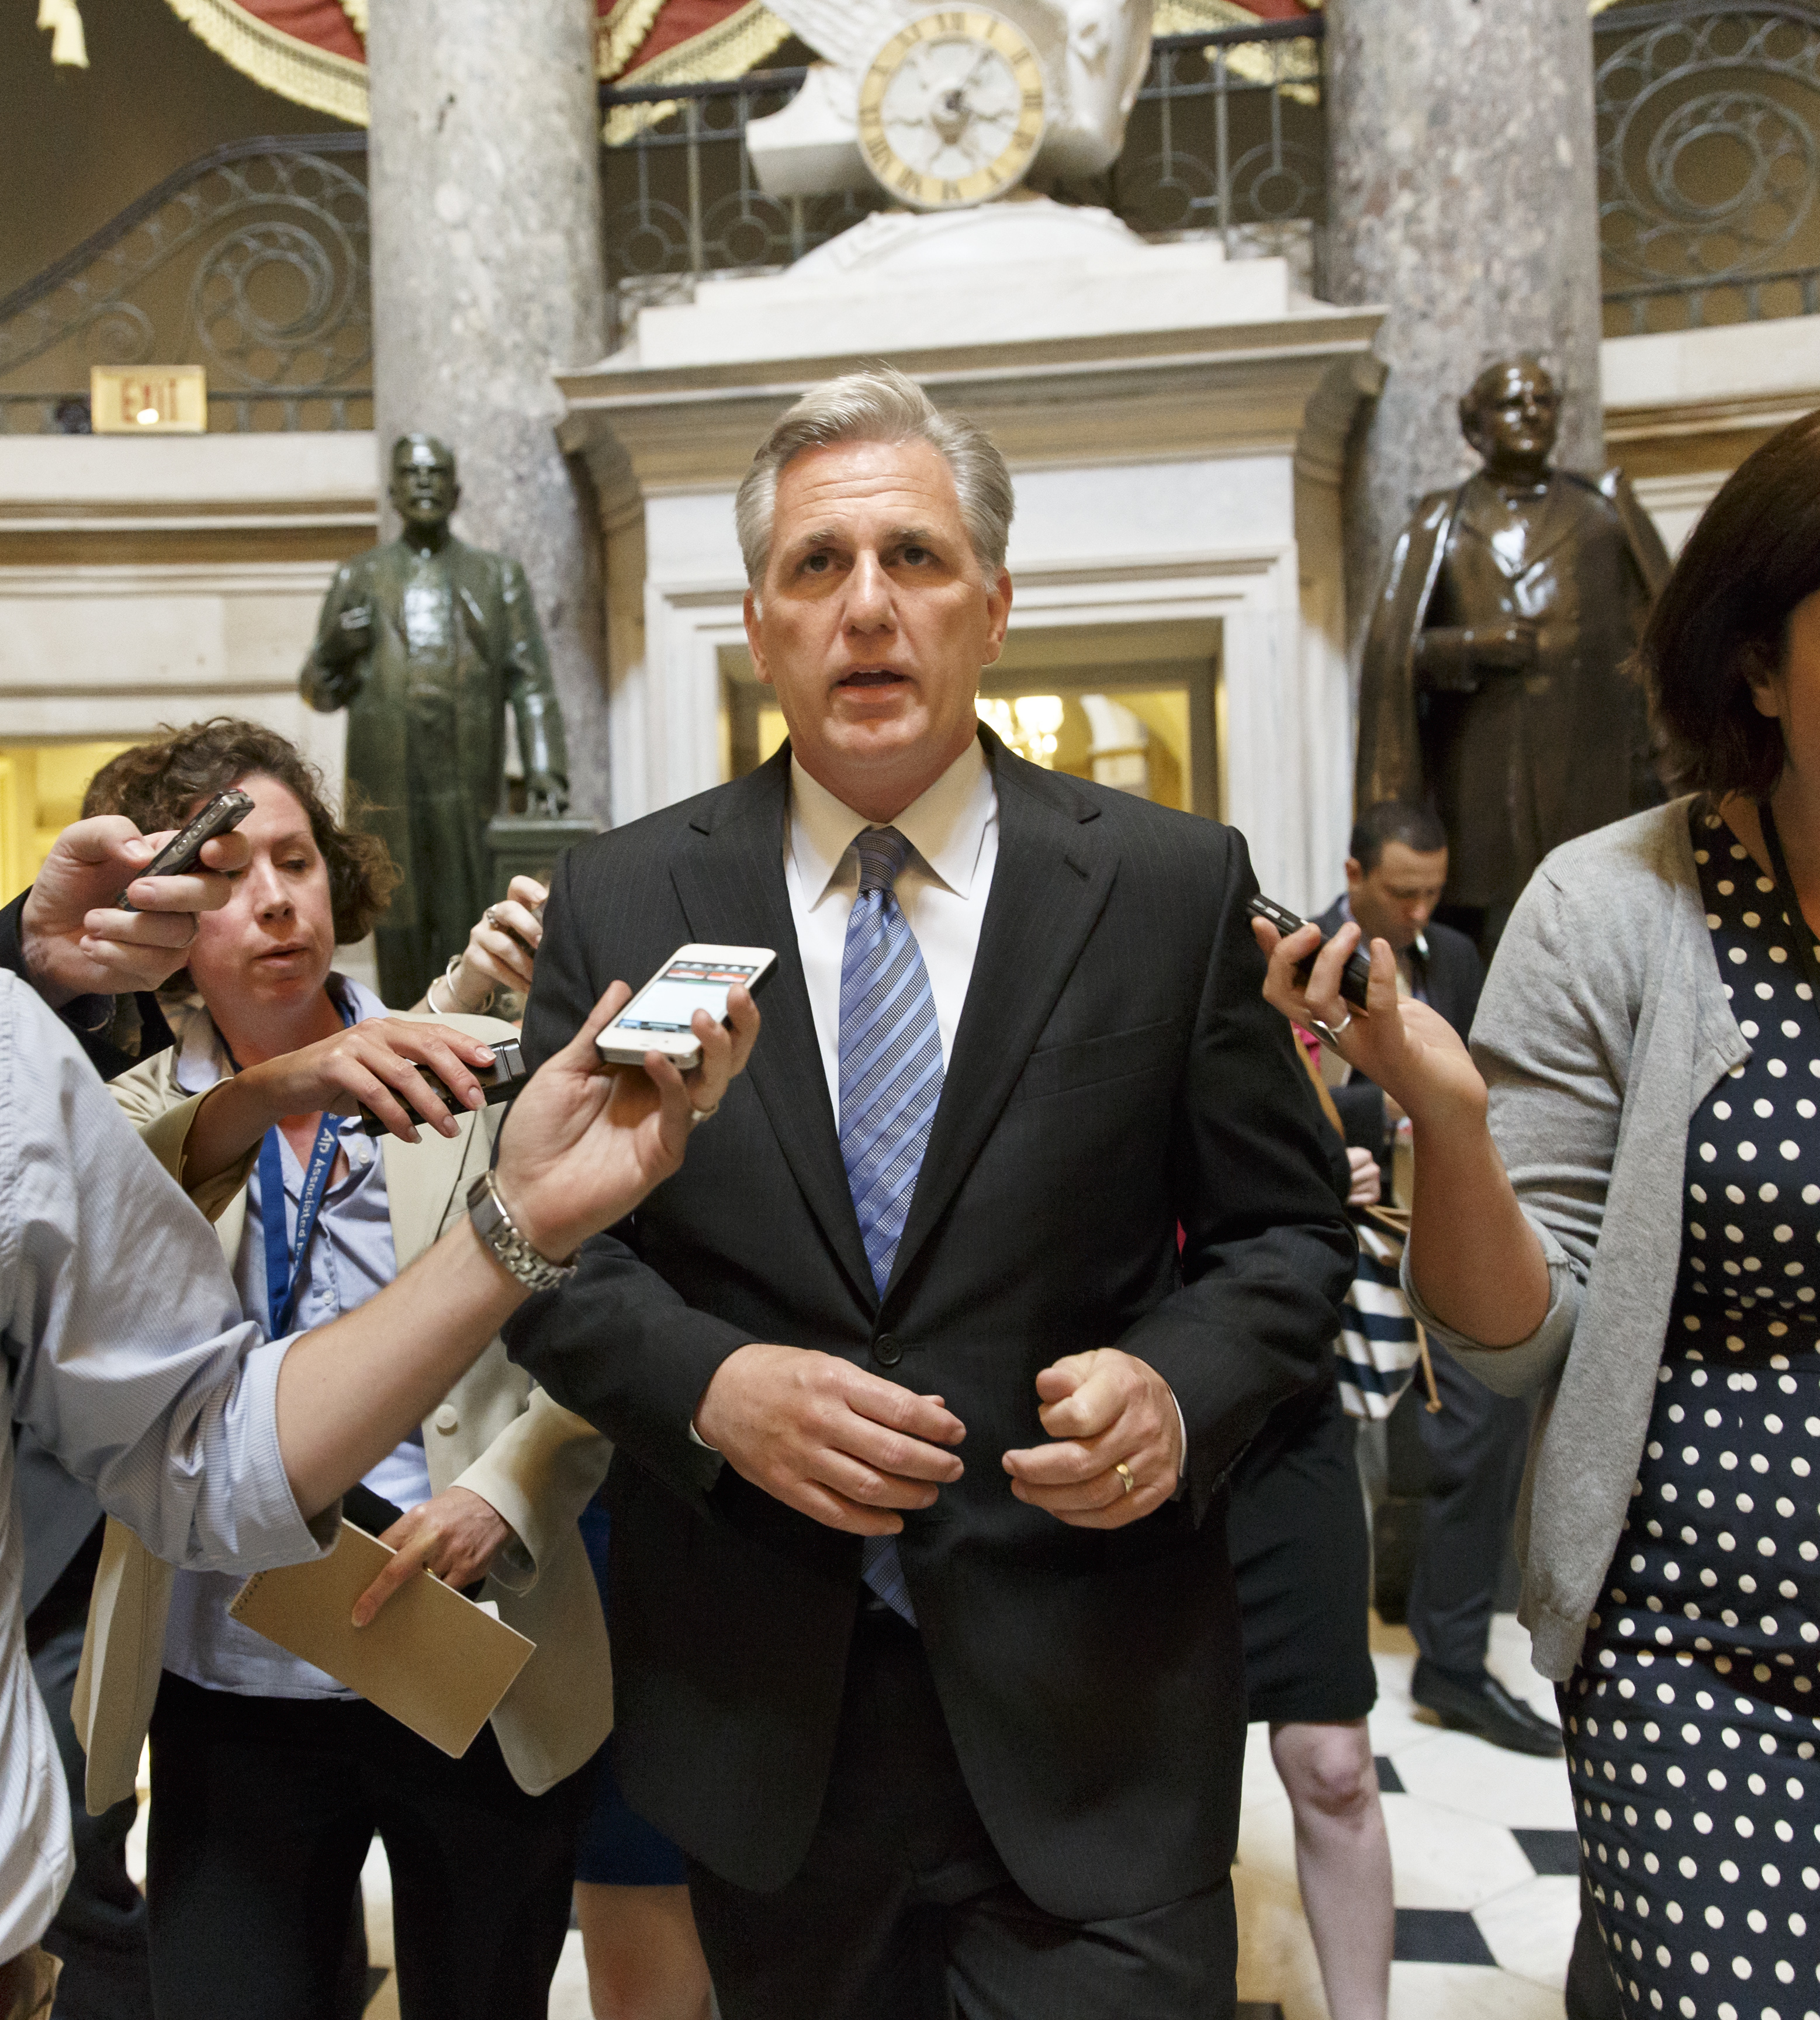 House Majority Whip Kevin McCarthy, R-Calif., leaves House Speaker John Boehner's office on the day after House Majority Leader Eric Cantor, R-Va., was defeated in the Virginia primary at the hands of a tea party challenger, at the Capitol in Washington, Wednesday, June 11, 2014.